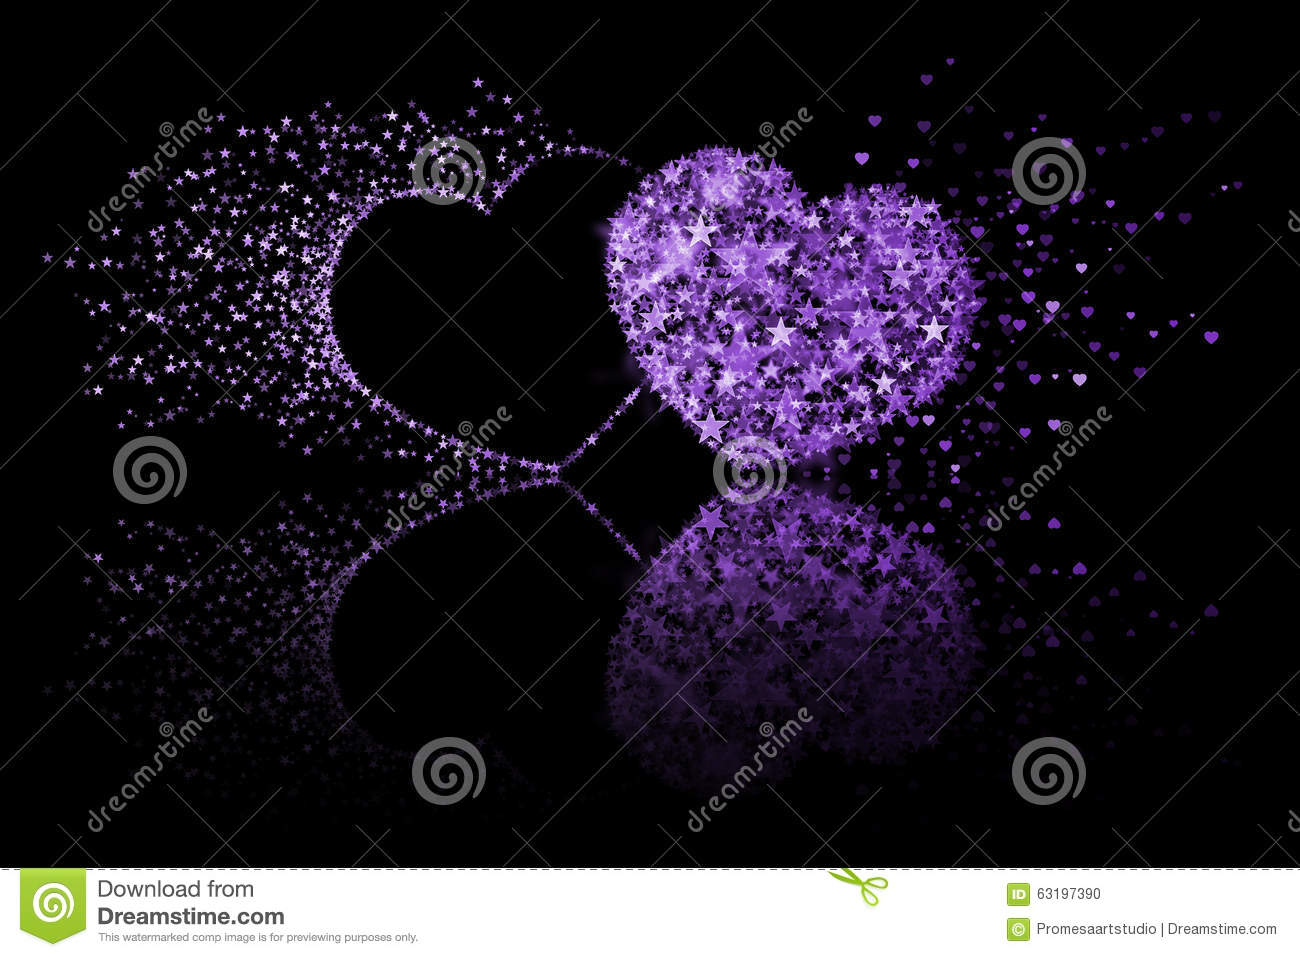 Purple And Black Hearts Wallpaper: Two Purple Hearts On Black Background With Reflection